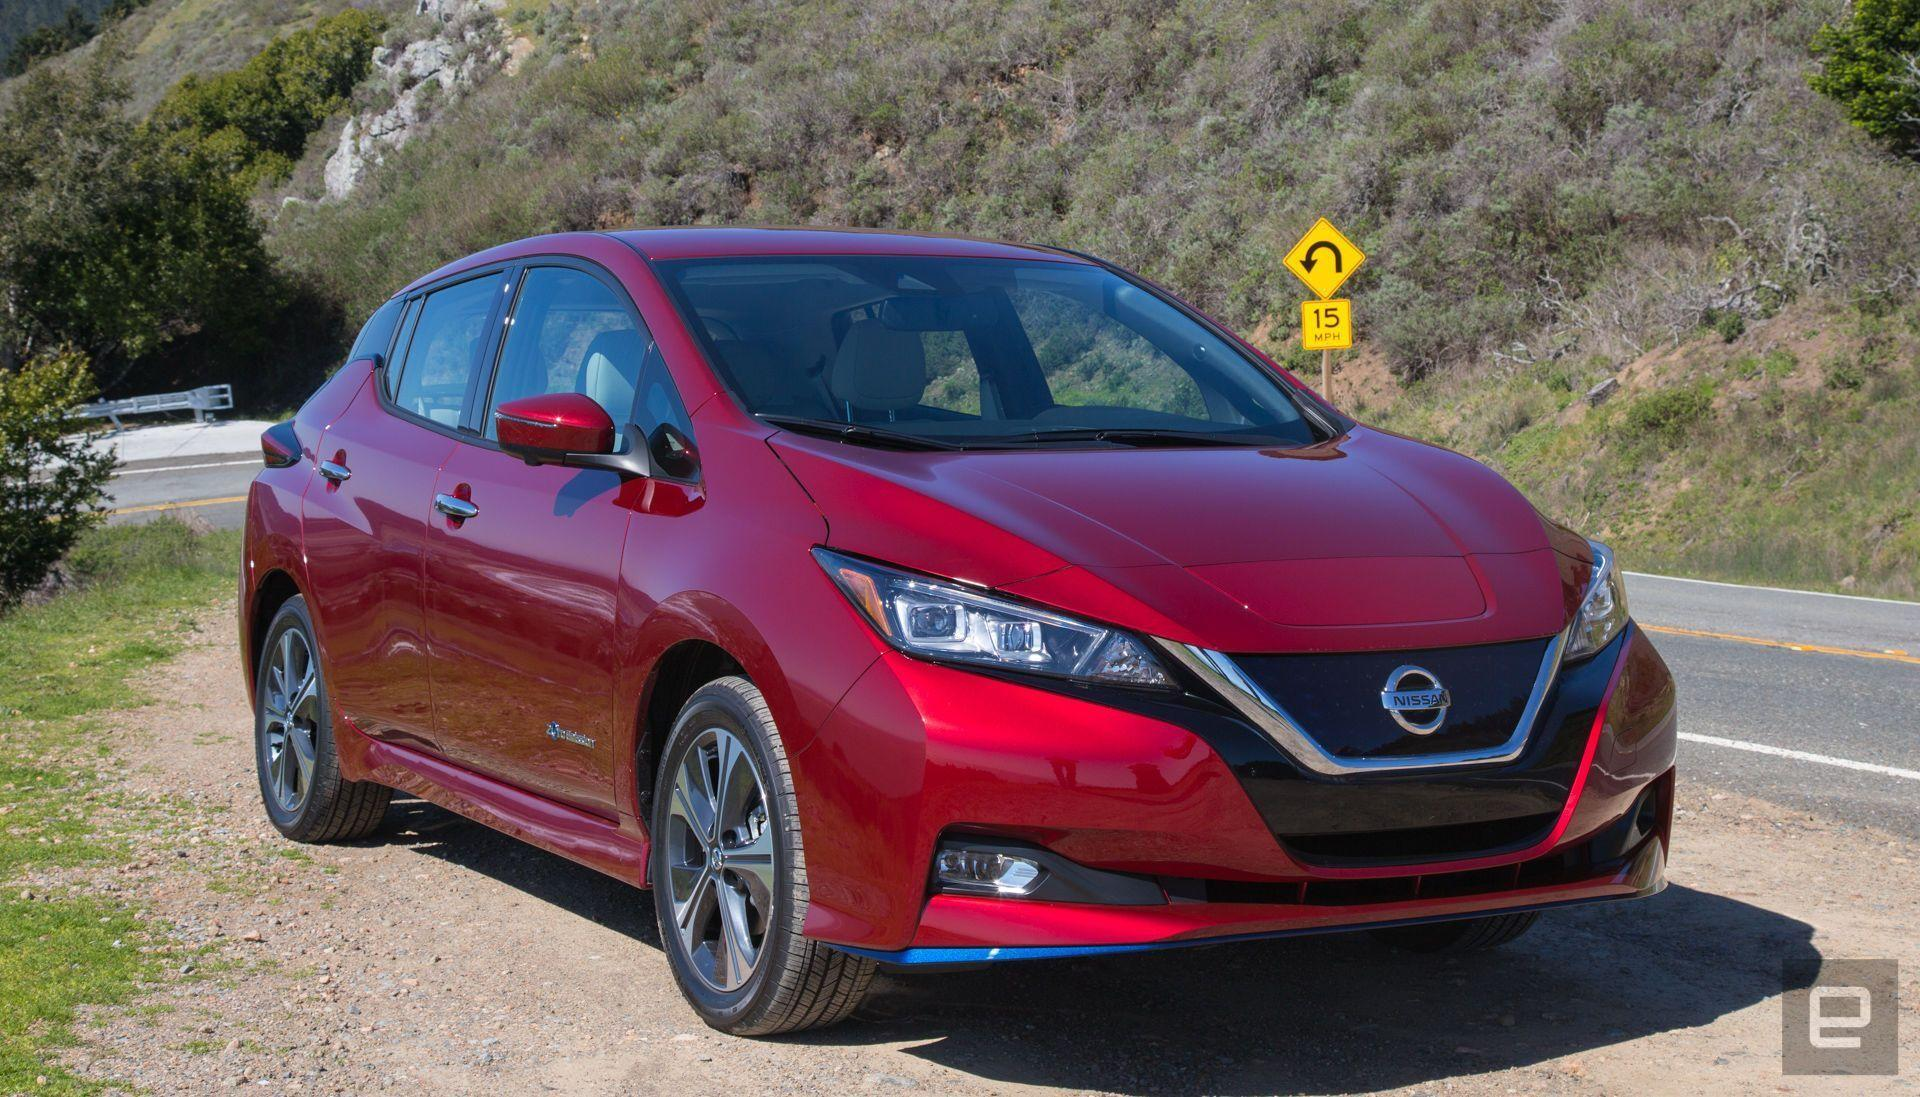 Apple reportedly also spoke to Nissan about building a self-driving EV